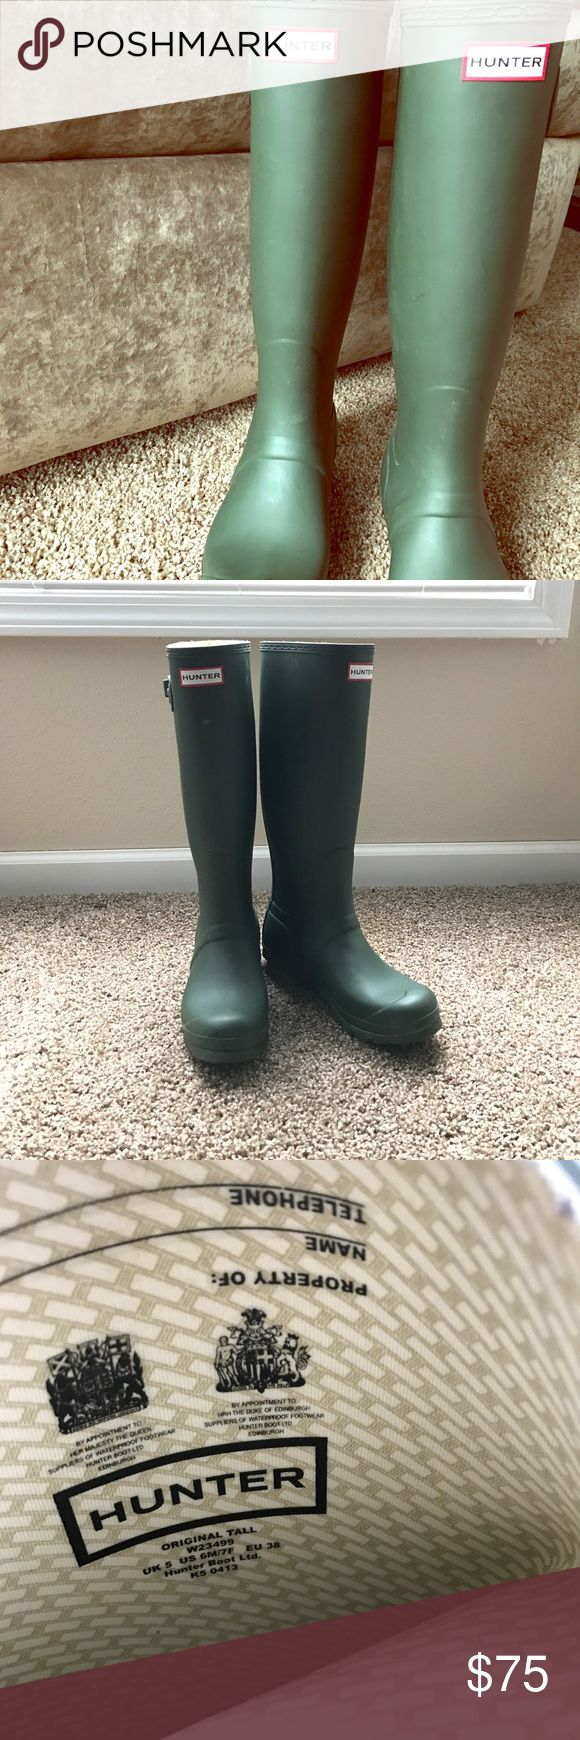 1000  ideas about Green Hunter Boots on Pinterest | Holiday ...